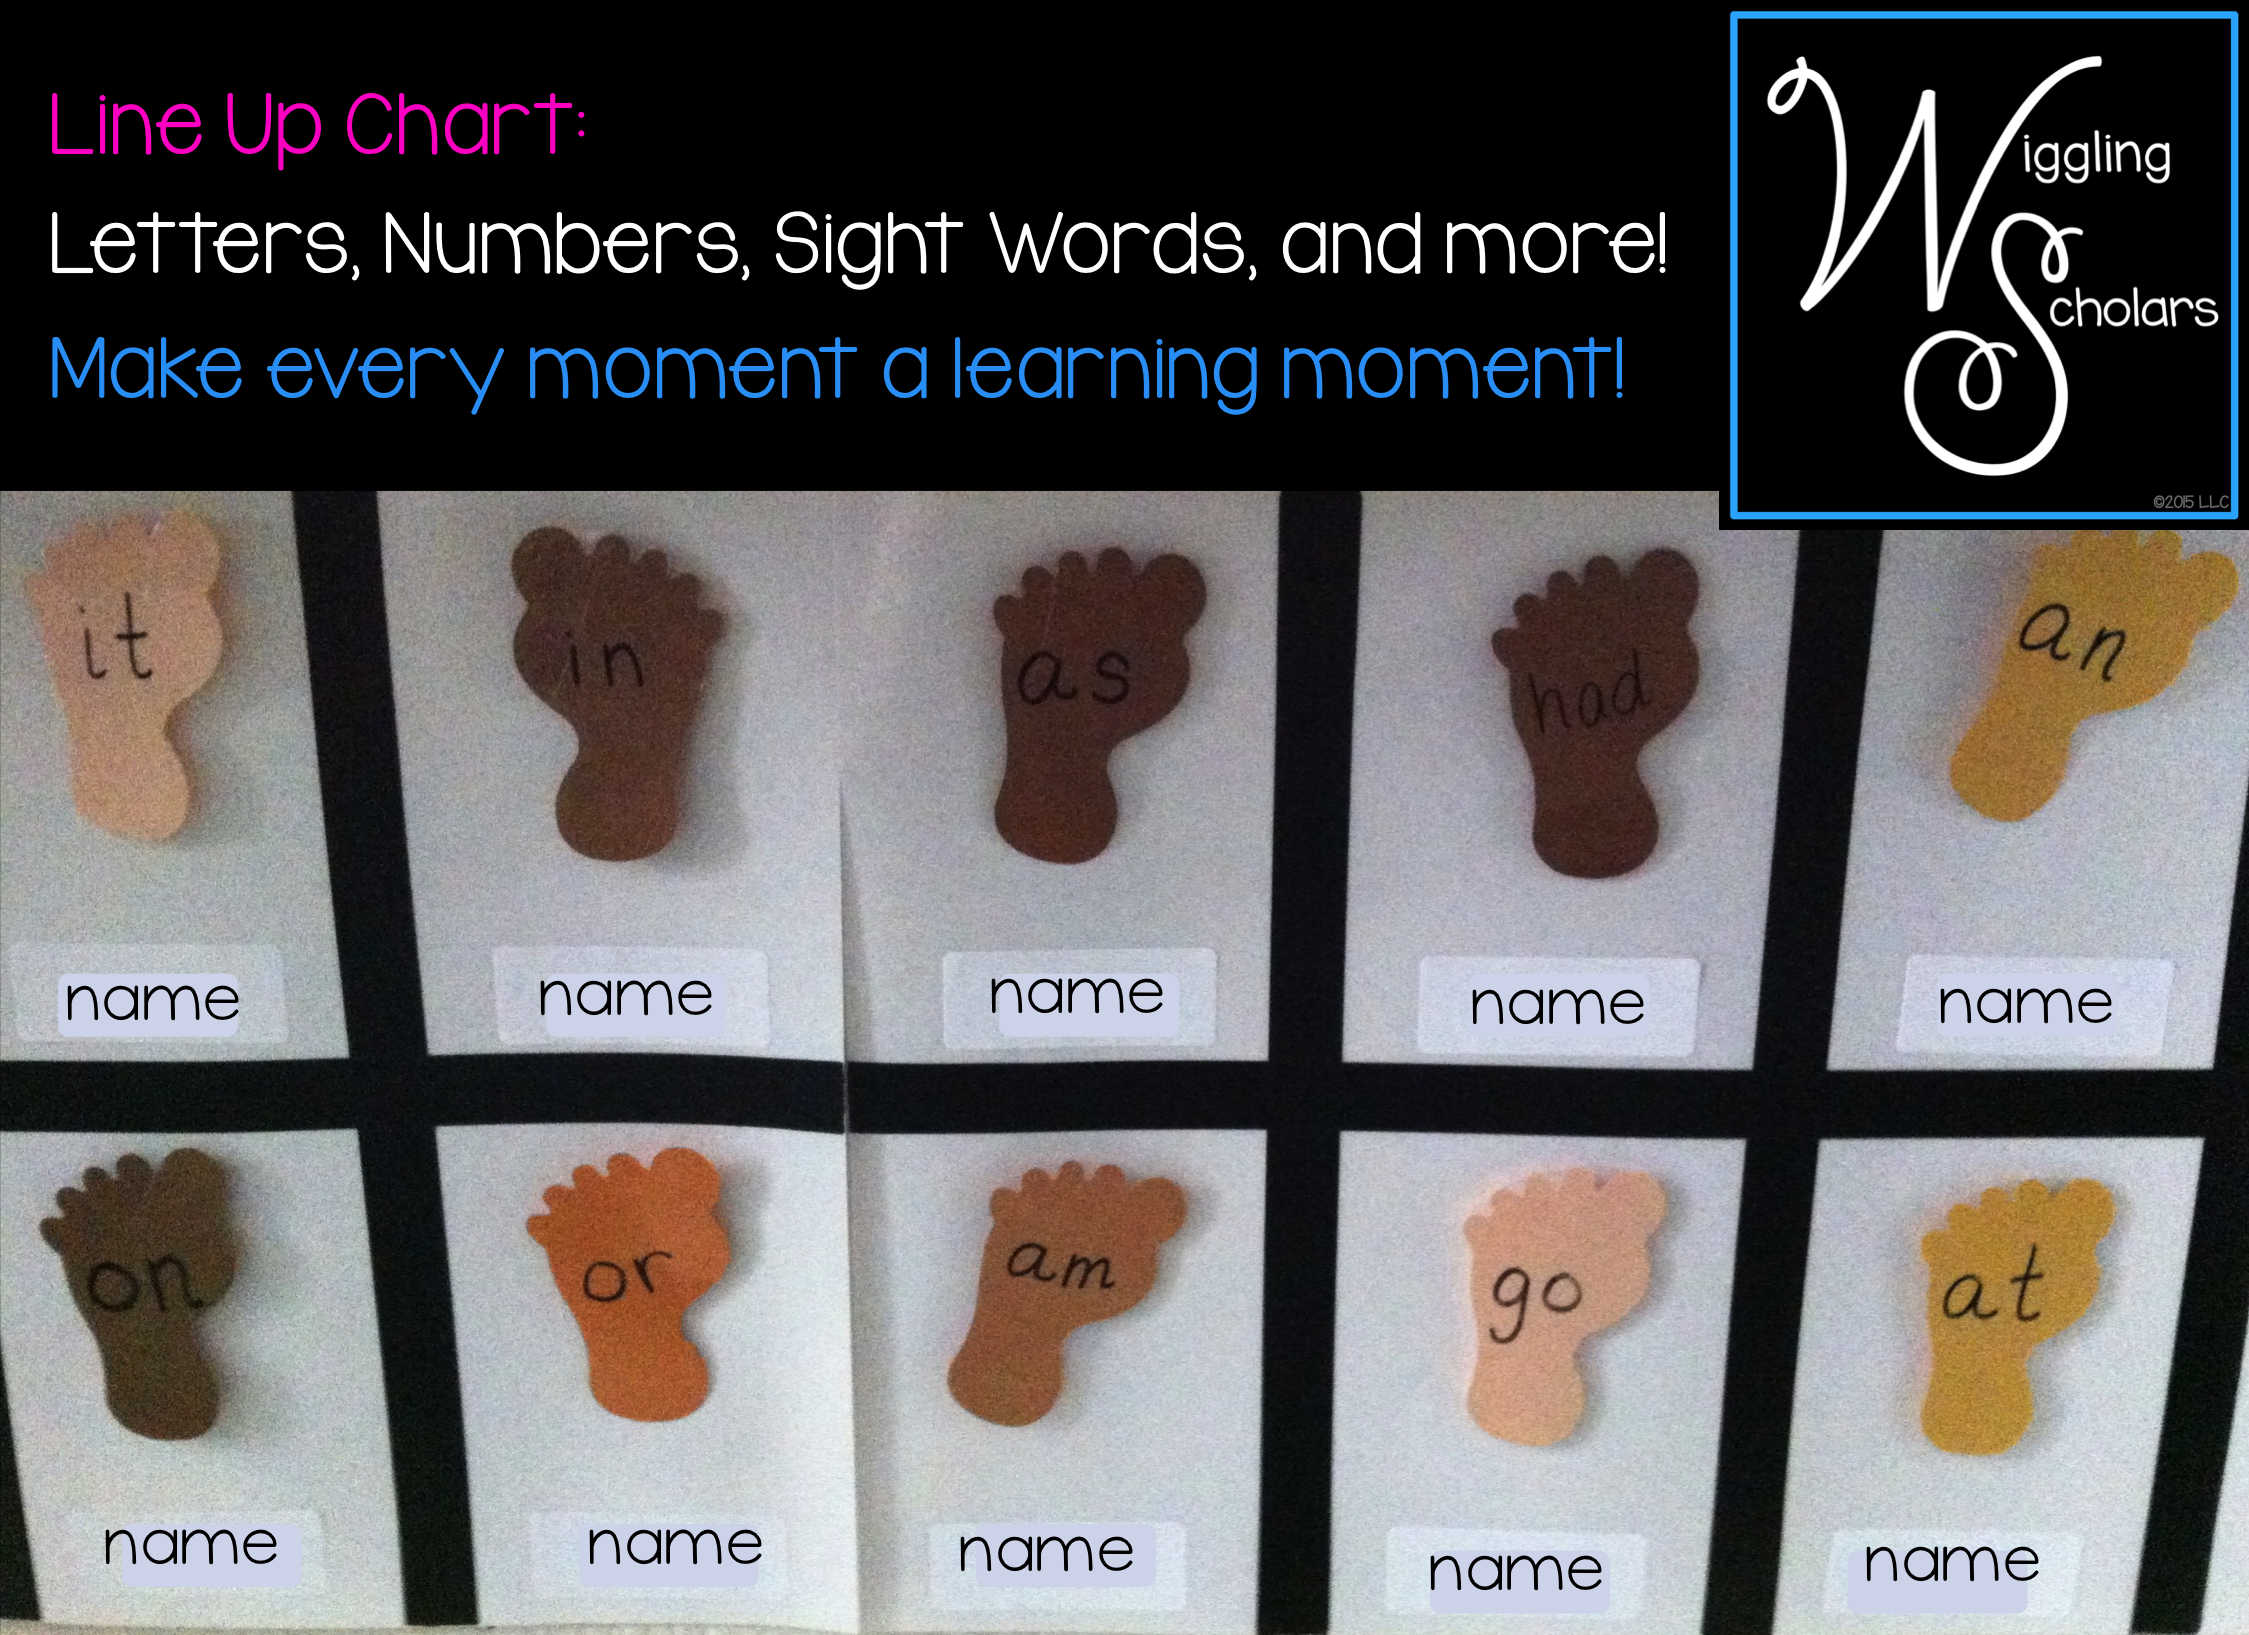 Line up feet chart with Alphabet Letters